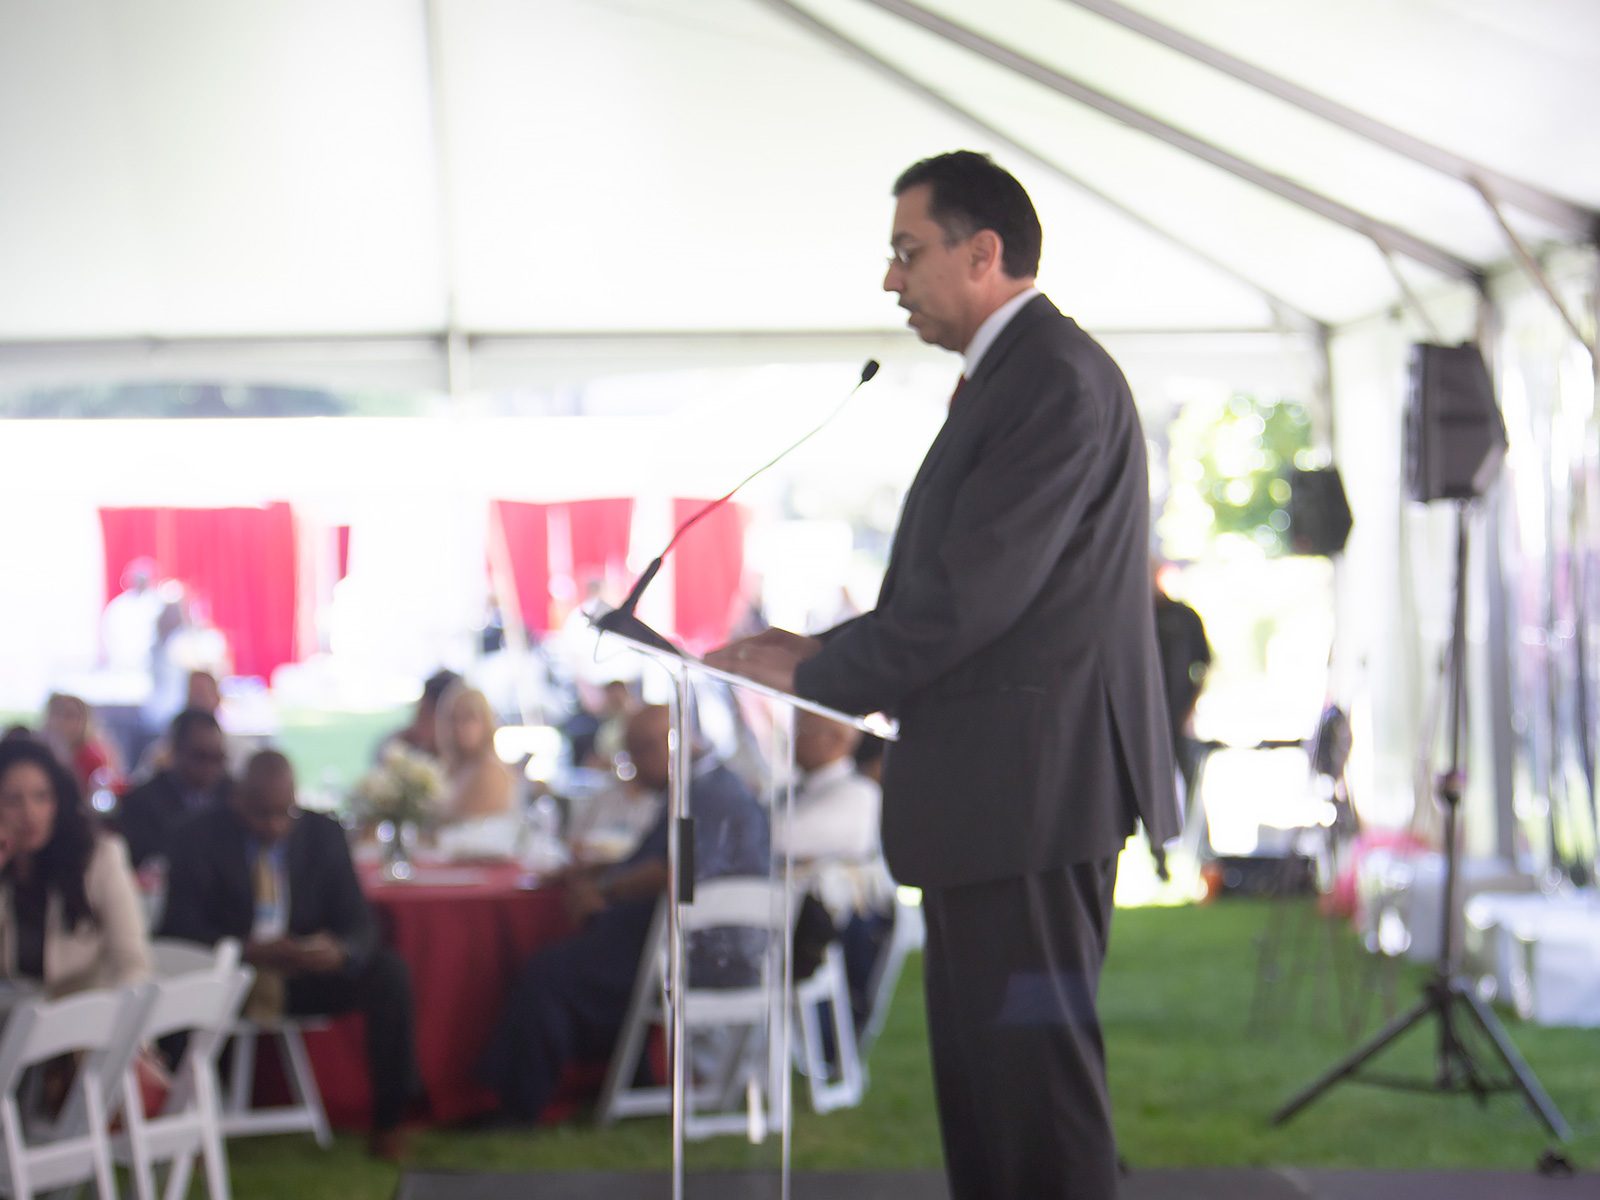 Deputy Cabinet Secretary, Richard Figueroa, speaks to attendees during the annual Day at the Capitol luncheon